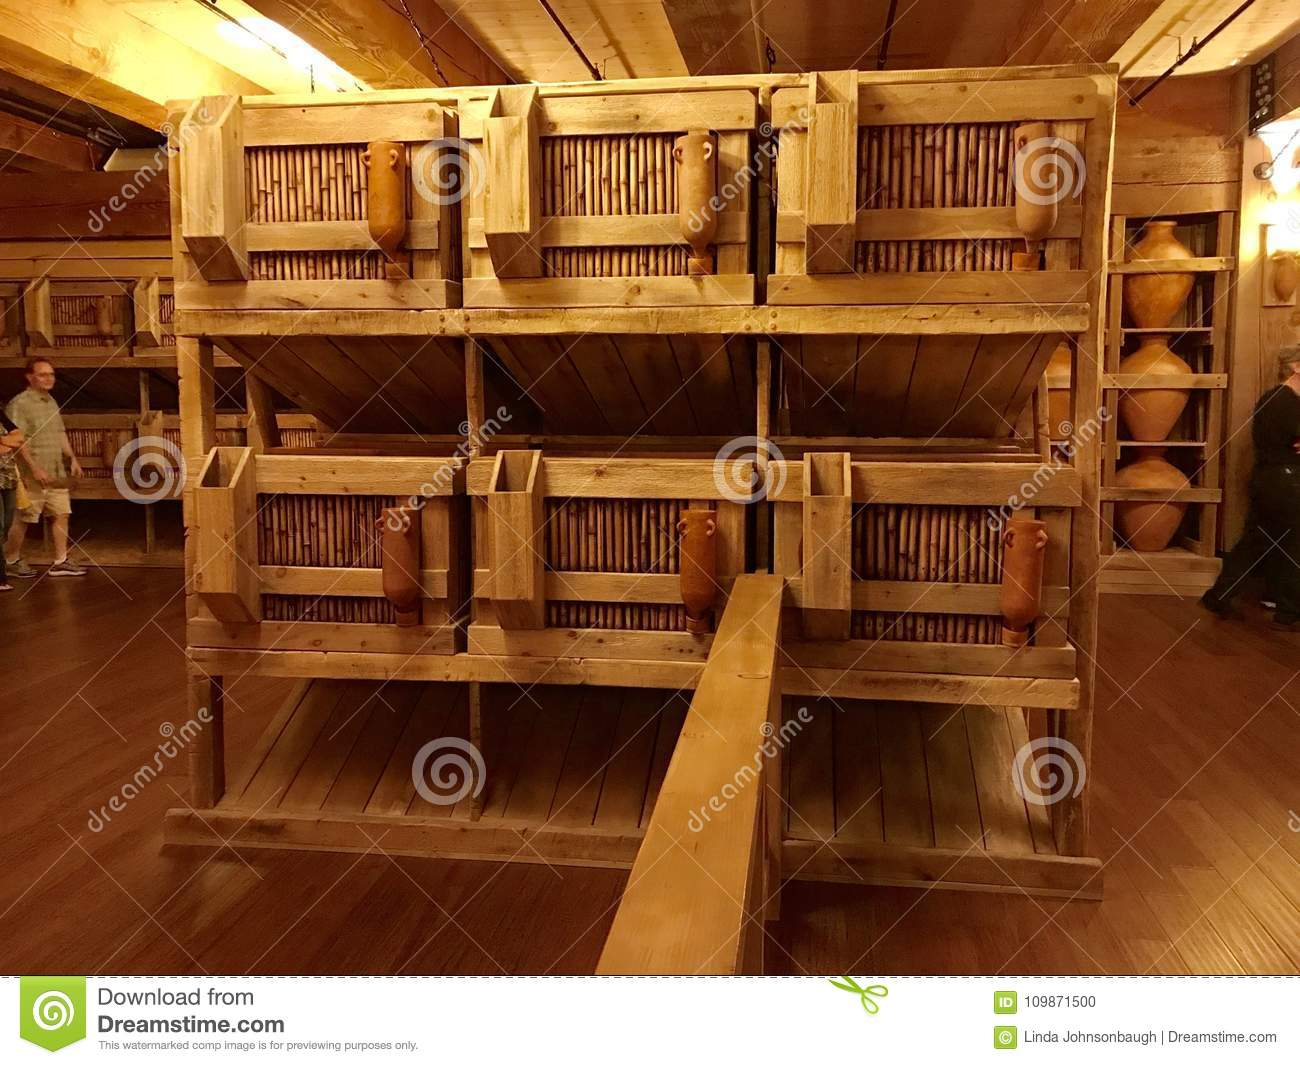 Animal Cages Inside Noahs Ark Replica At The Ark Encounter